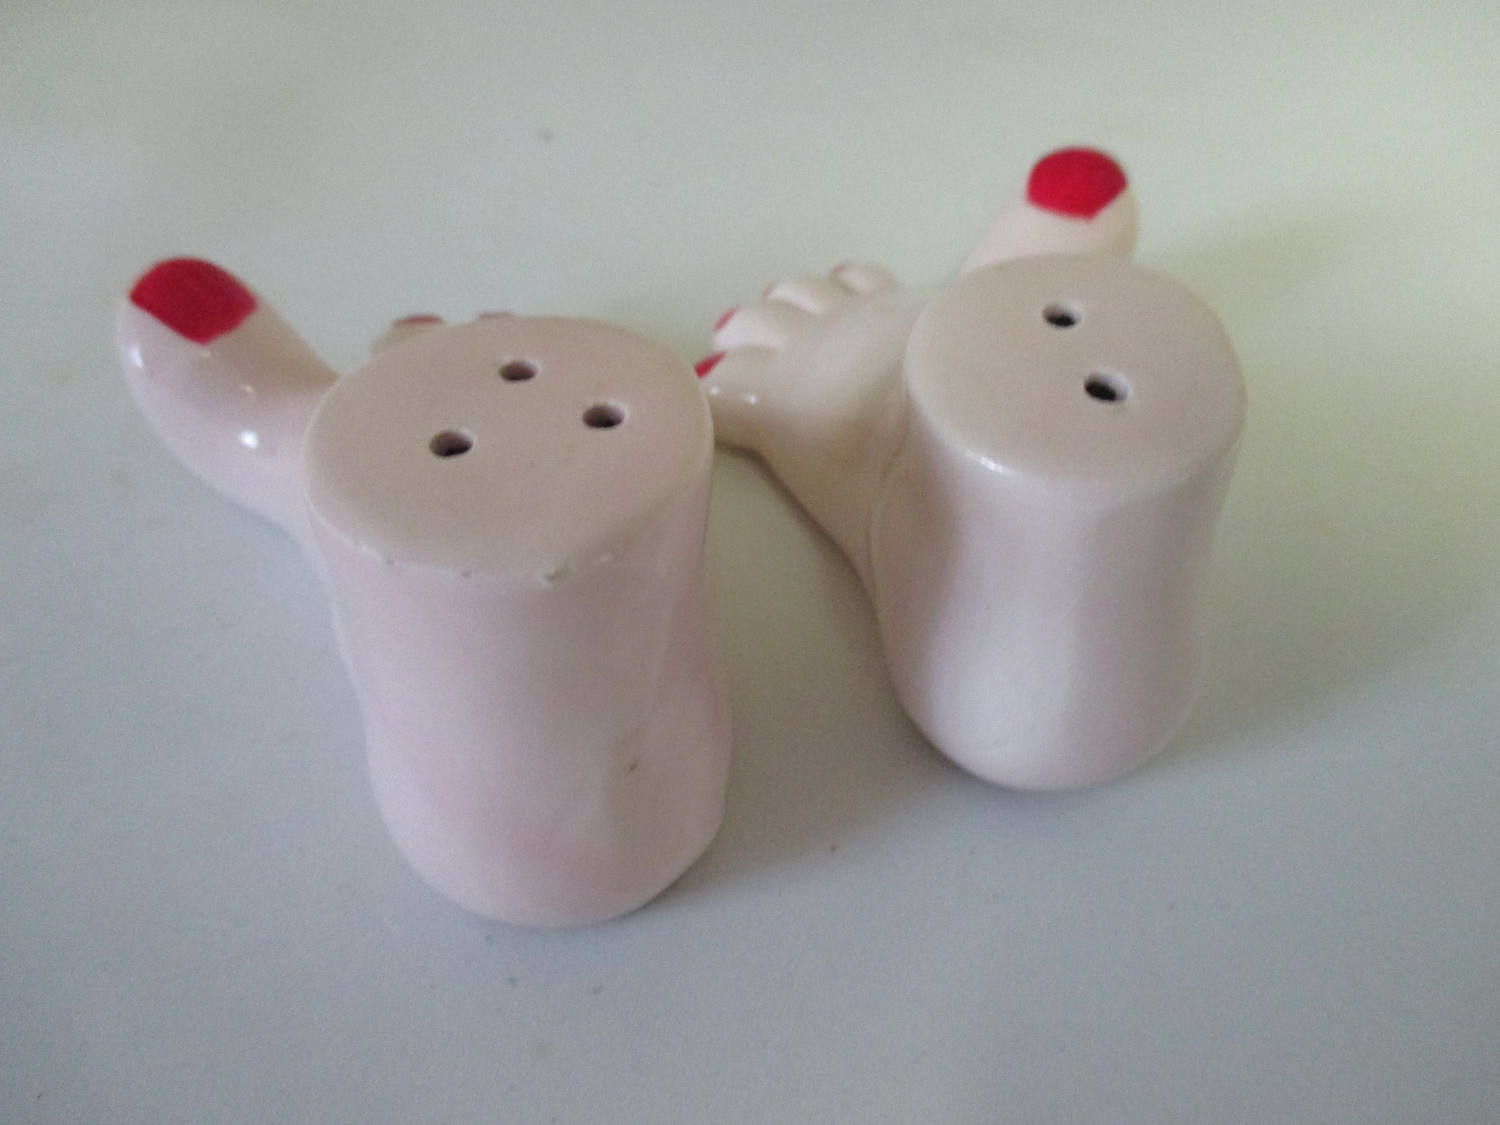 Mid Century Bare Feet Red Painted toe nails Salt and Pepper shakers cottage collectible display farmhouse country Kitchen Beach